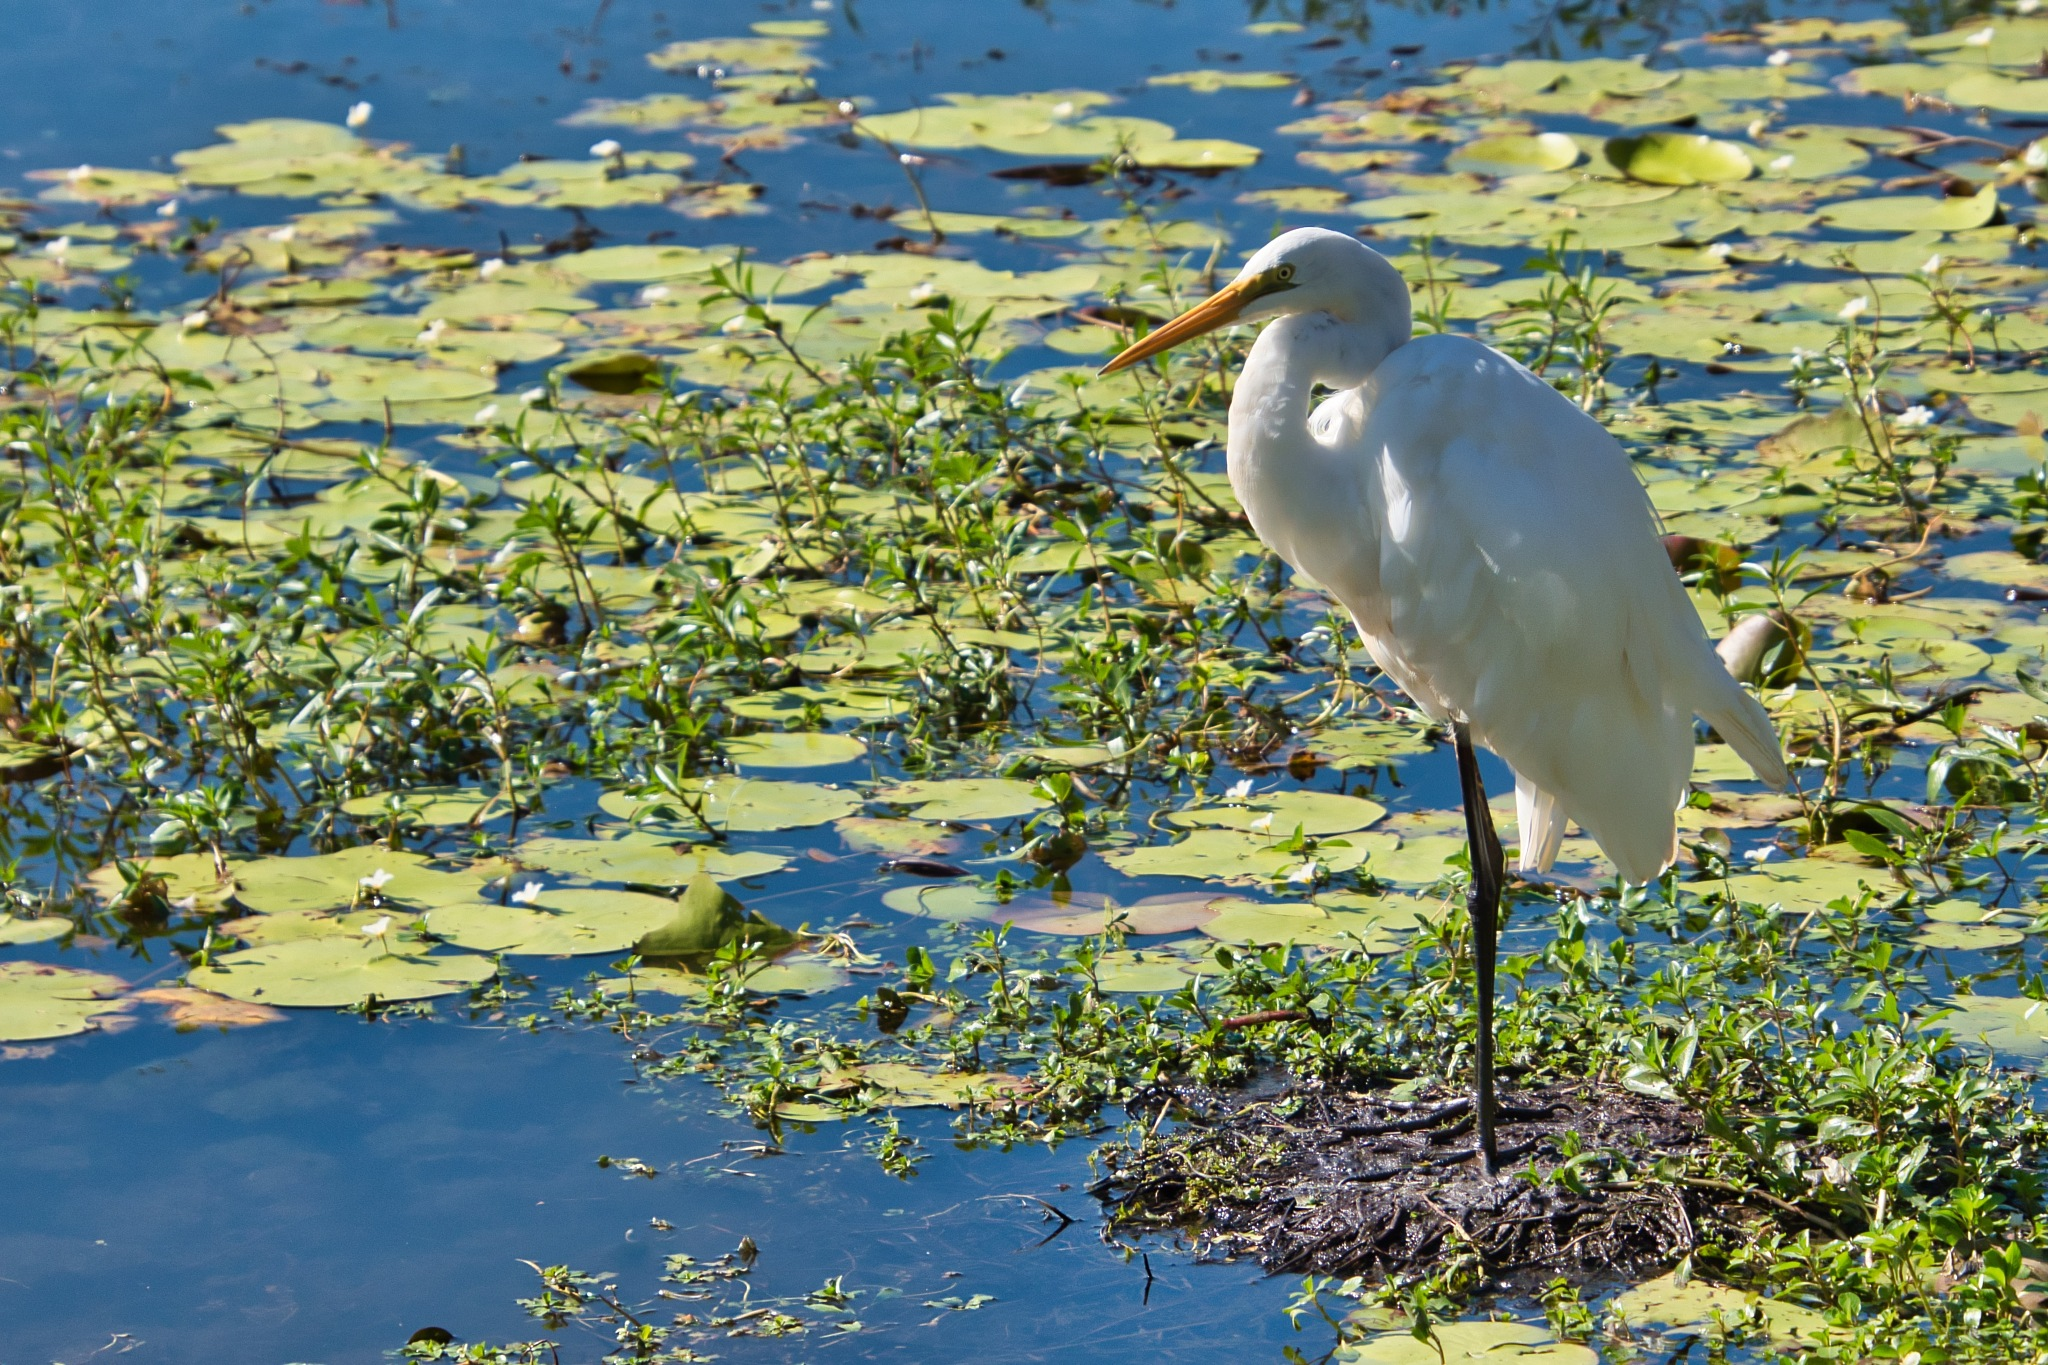 Great Eastern Egret by Kim McGlinchey